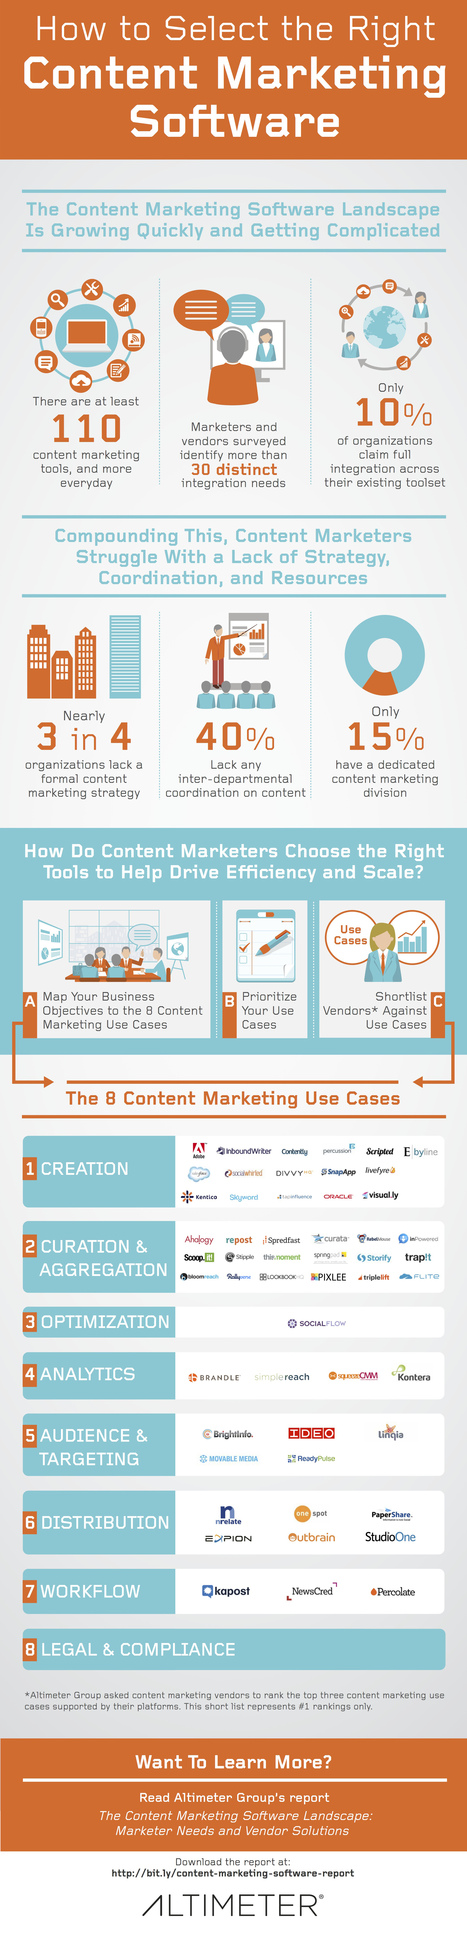 Infographic : How to Select the Right Content Marketing Software   Contenus Marketing BtoB   Scoop.it